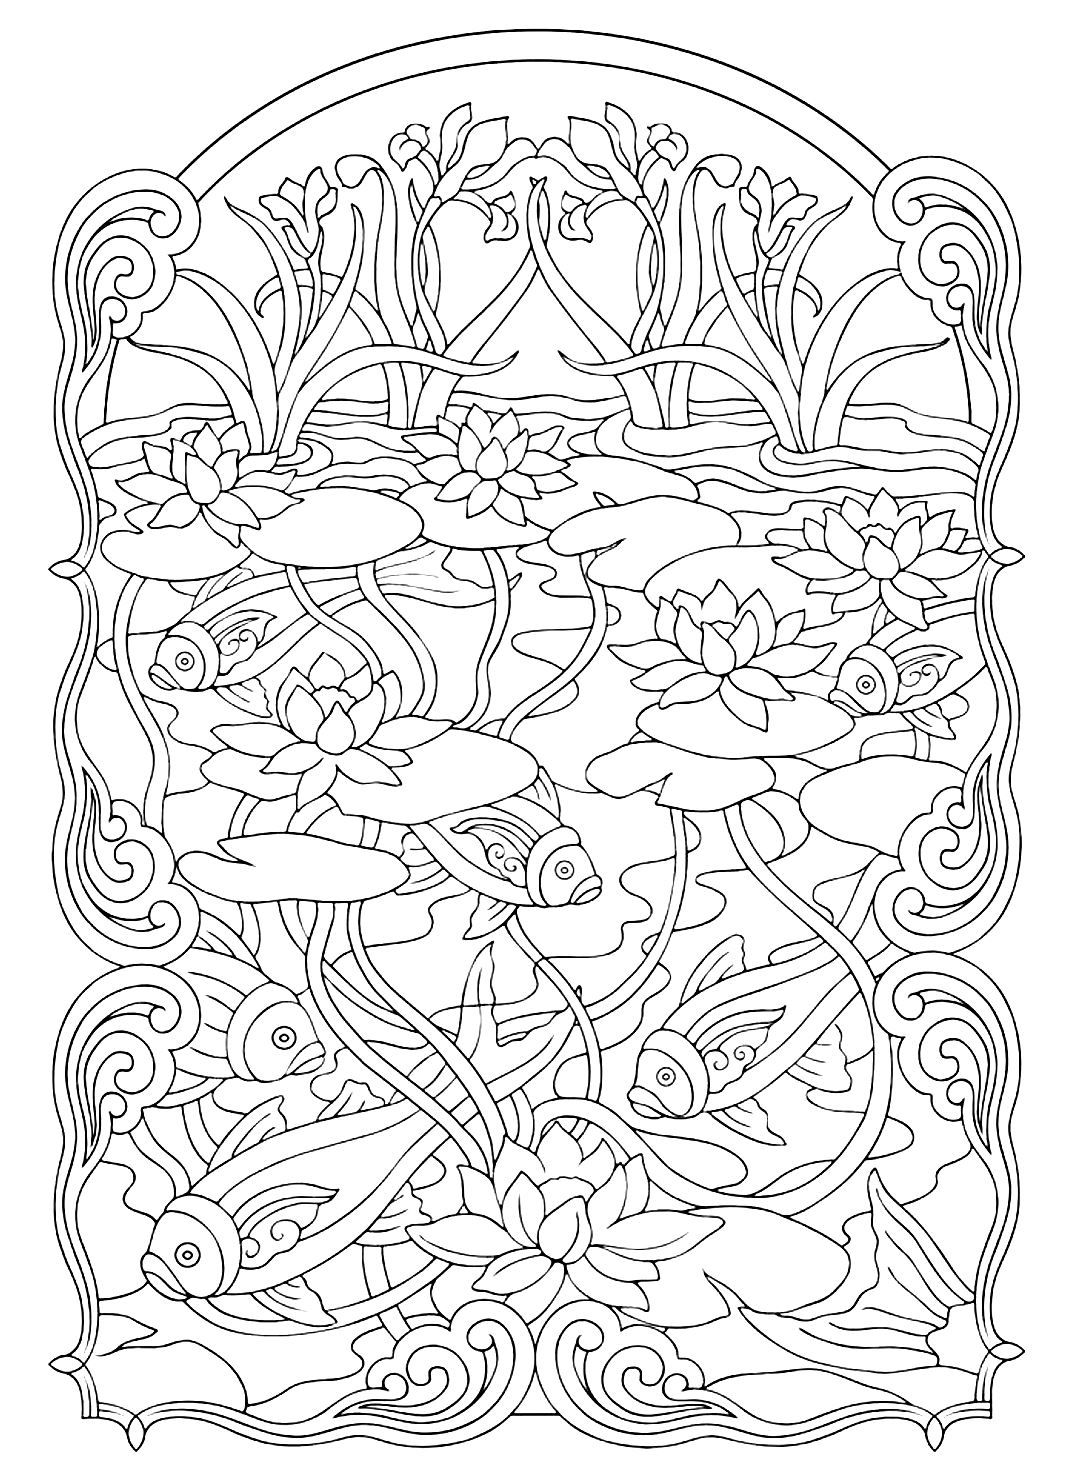 Fischteich Clipart Coloring Page Adults Drawing Art Animals Zen Antistress